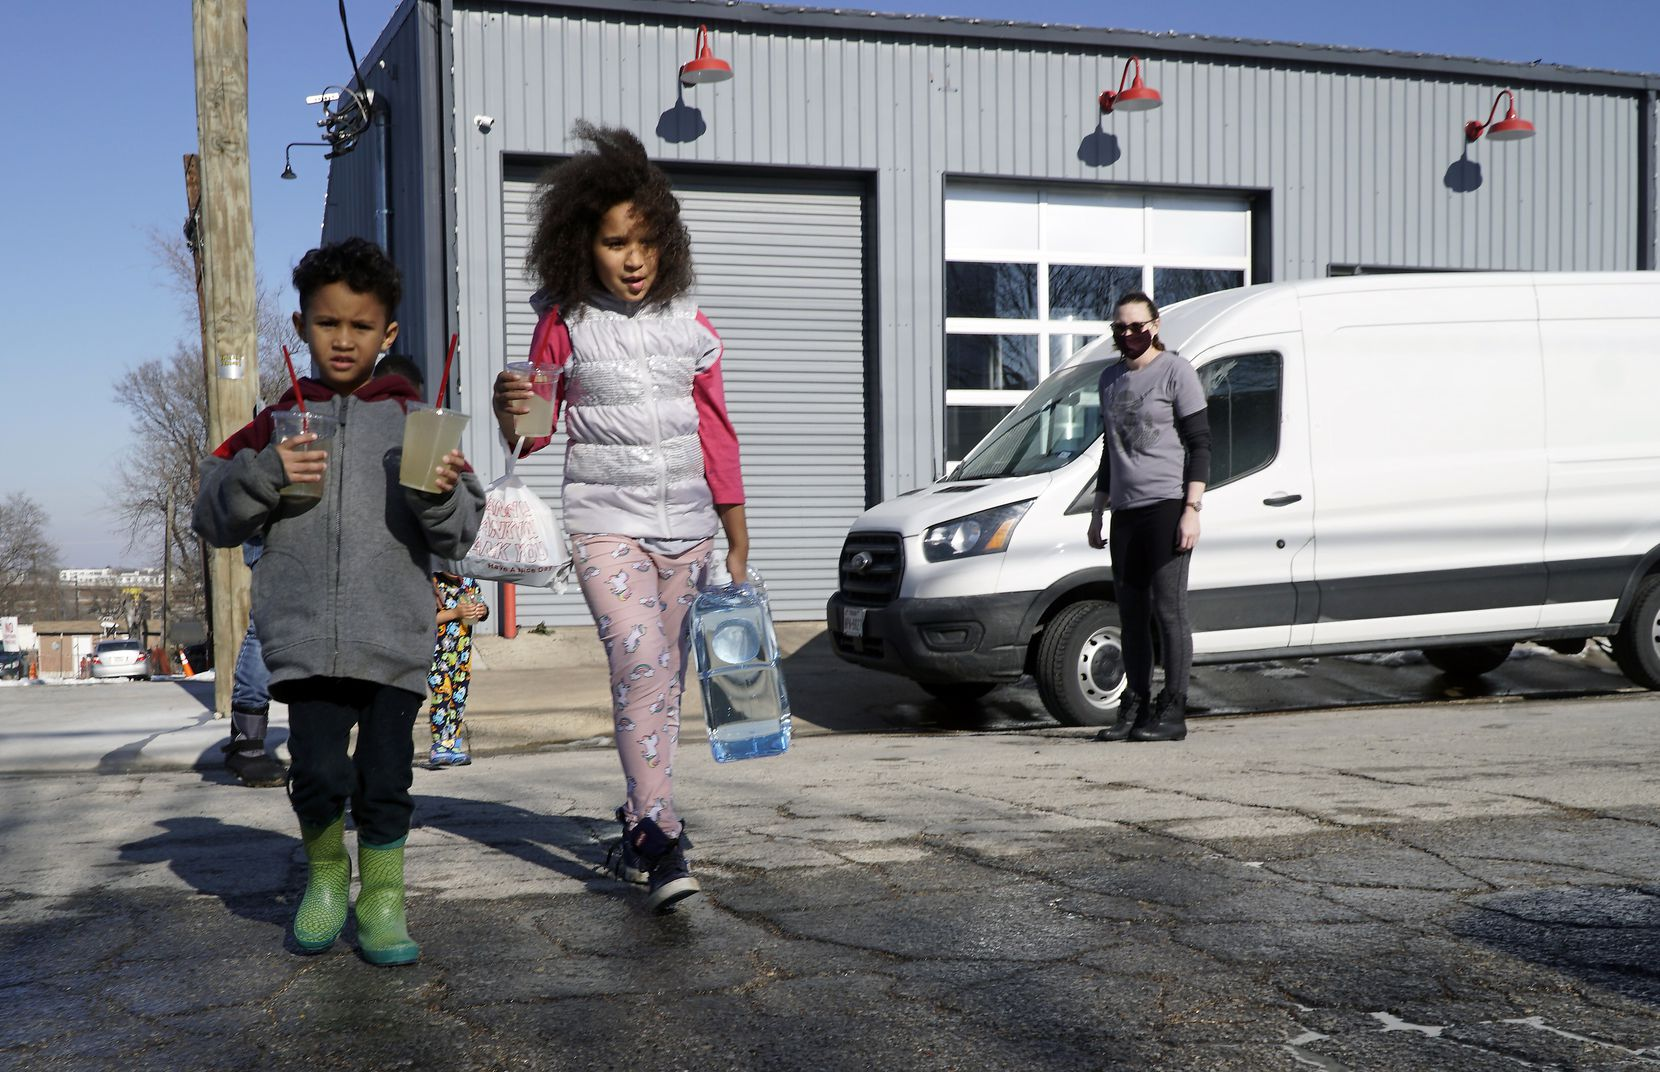 Michael Doamekpor (5) and his sister Kiera Doamekpor (9) carry drinks and filtered water to the car at Cowtown Brewing Co. in Fort Worth.